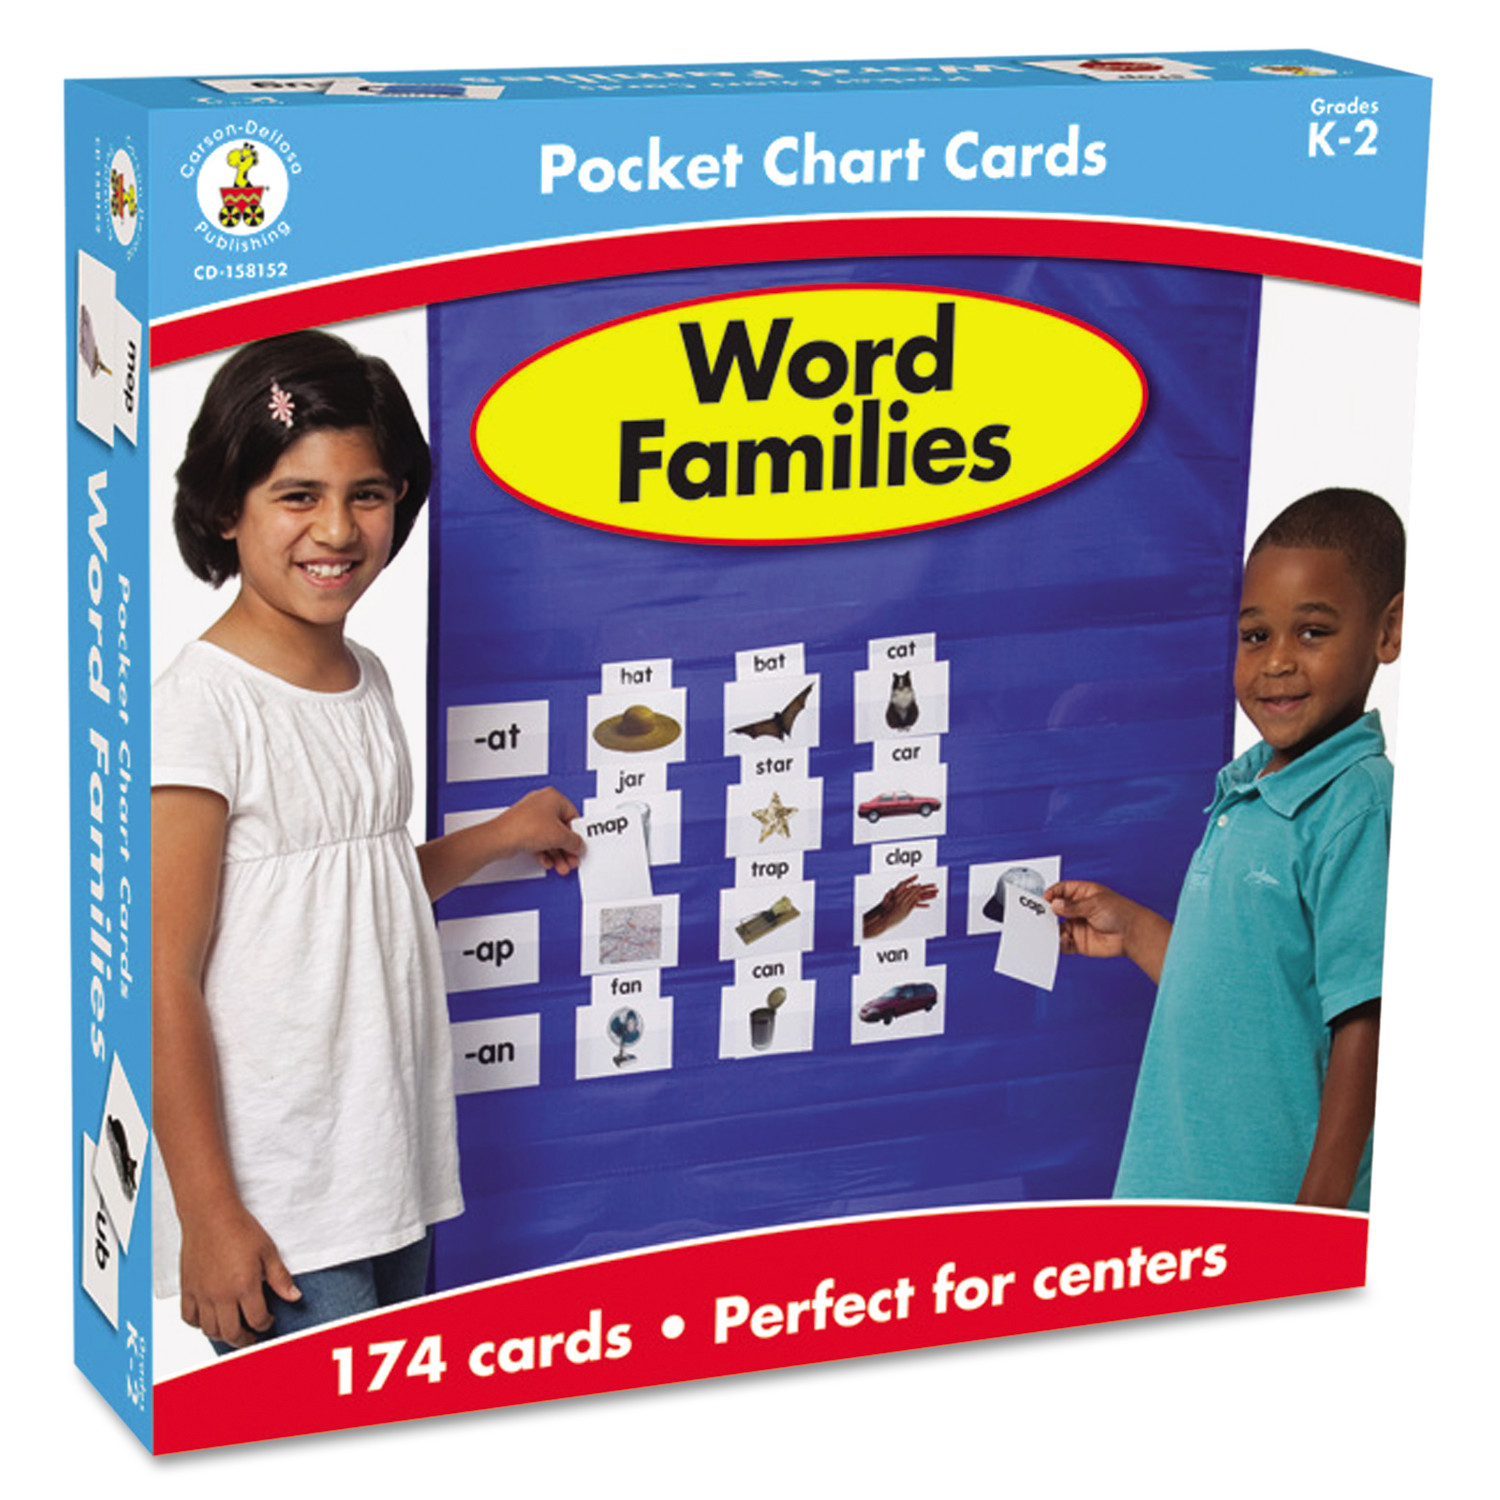 Carson-Dellosa Publishing Word Families Cards for Pocket Chart, 4 x 2 3/4, 164 Cards, Ages 4-5 CD-158152